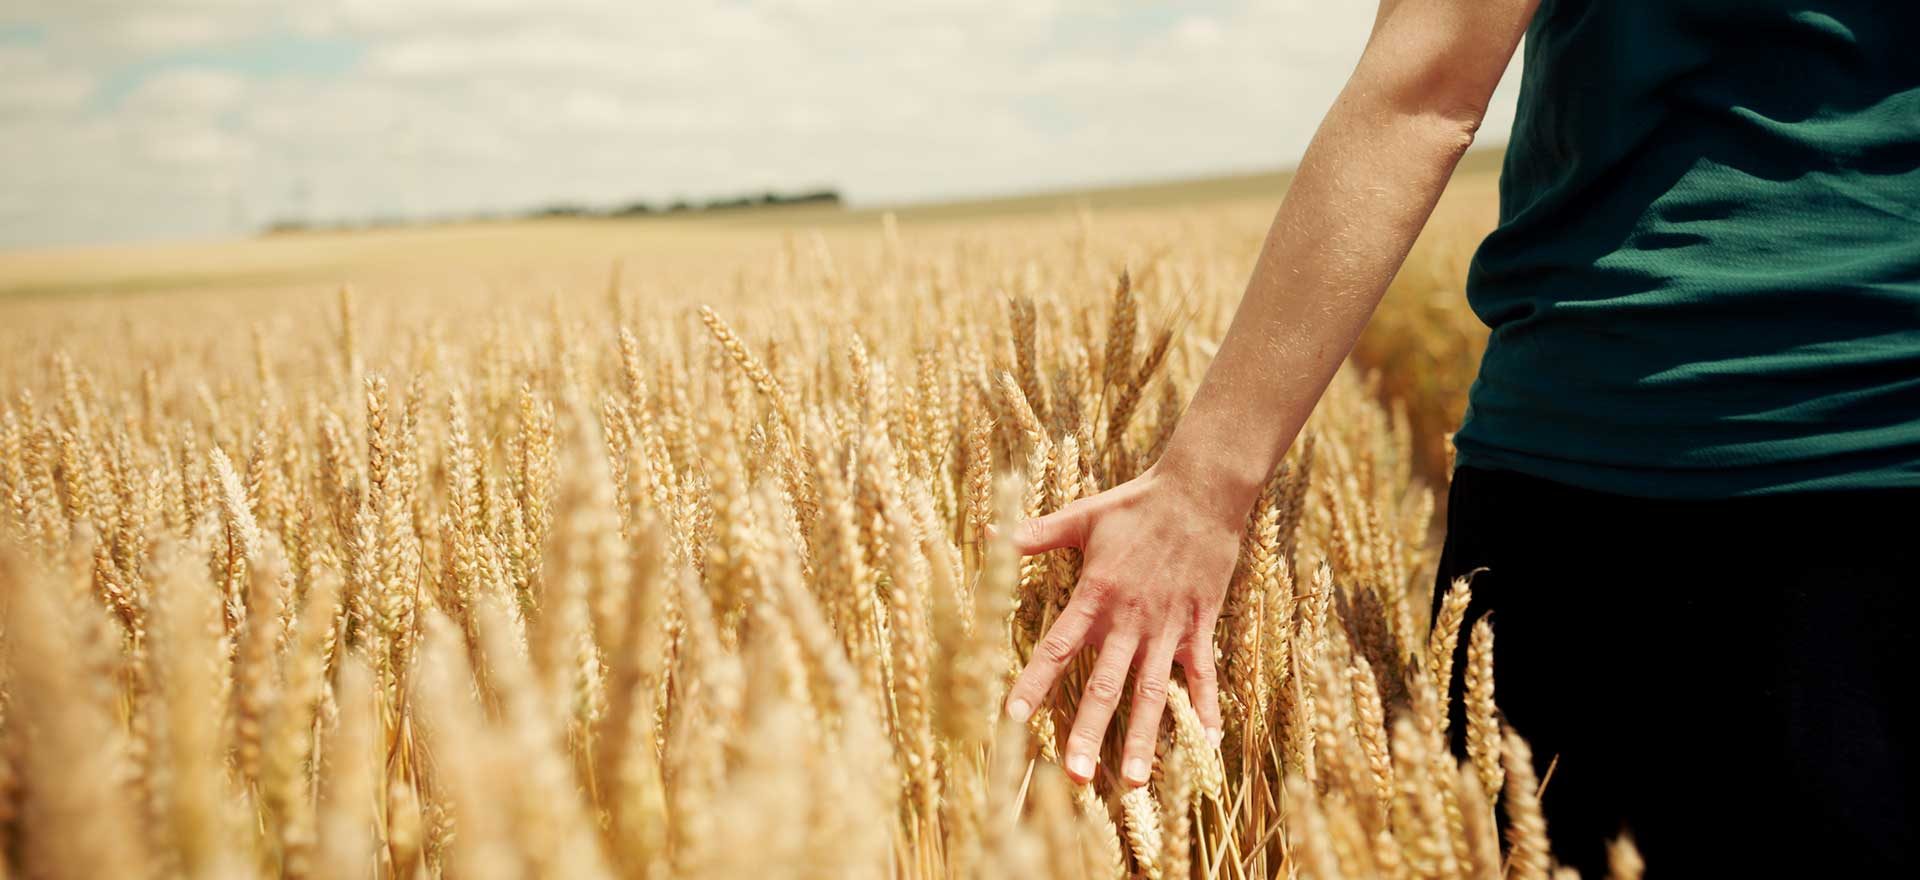 Person walking through a wheat field while grazing the wheat with their hand.